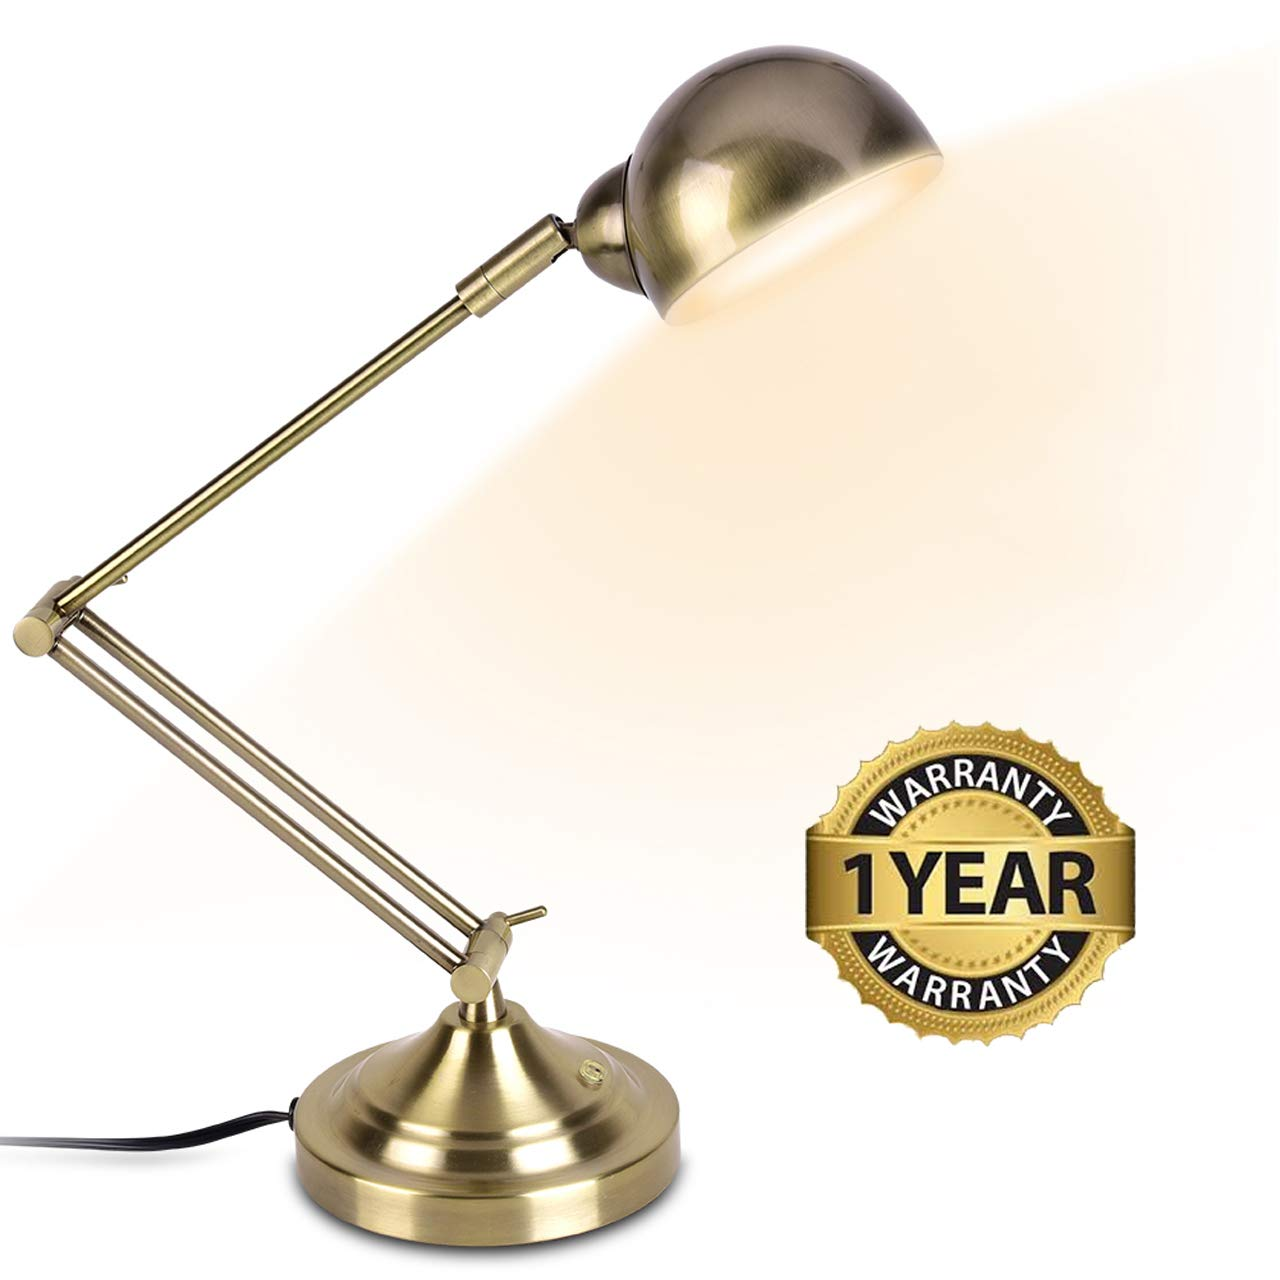 LED Desk Lamp - Brass Desk Lamps, 7W Energy-Saving, 350° Adjustable Arm, Eye-Caring, Touch Control, Vintage Antique Table Lamps, Dimmable Gold Desk Lamp for Office, Work, Reading, Study by SUNLLIPE